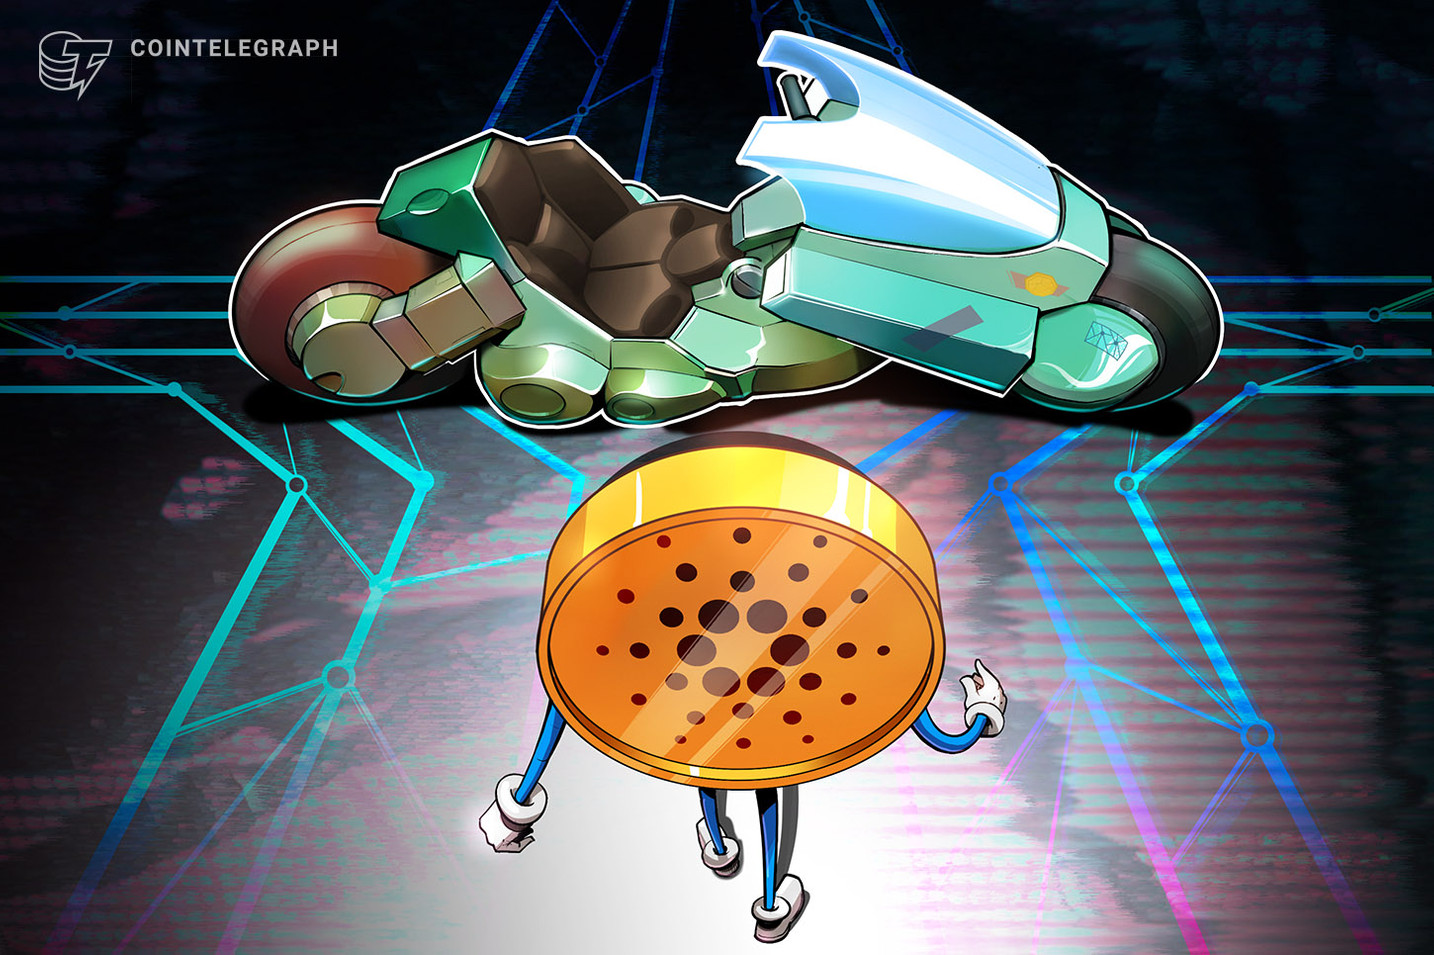 Cardano approaches a new major upgrade as ADA posts an inspired rally